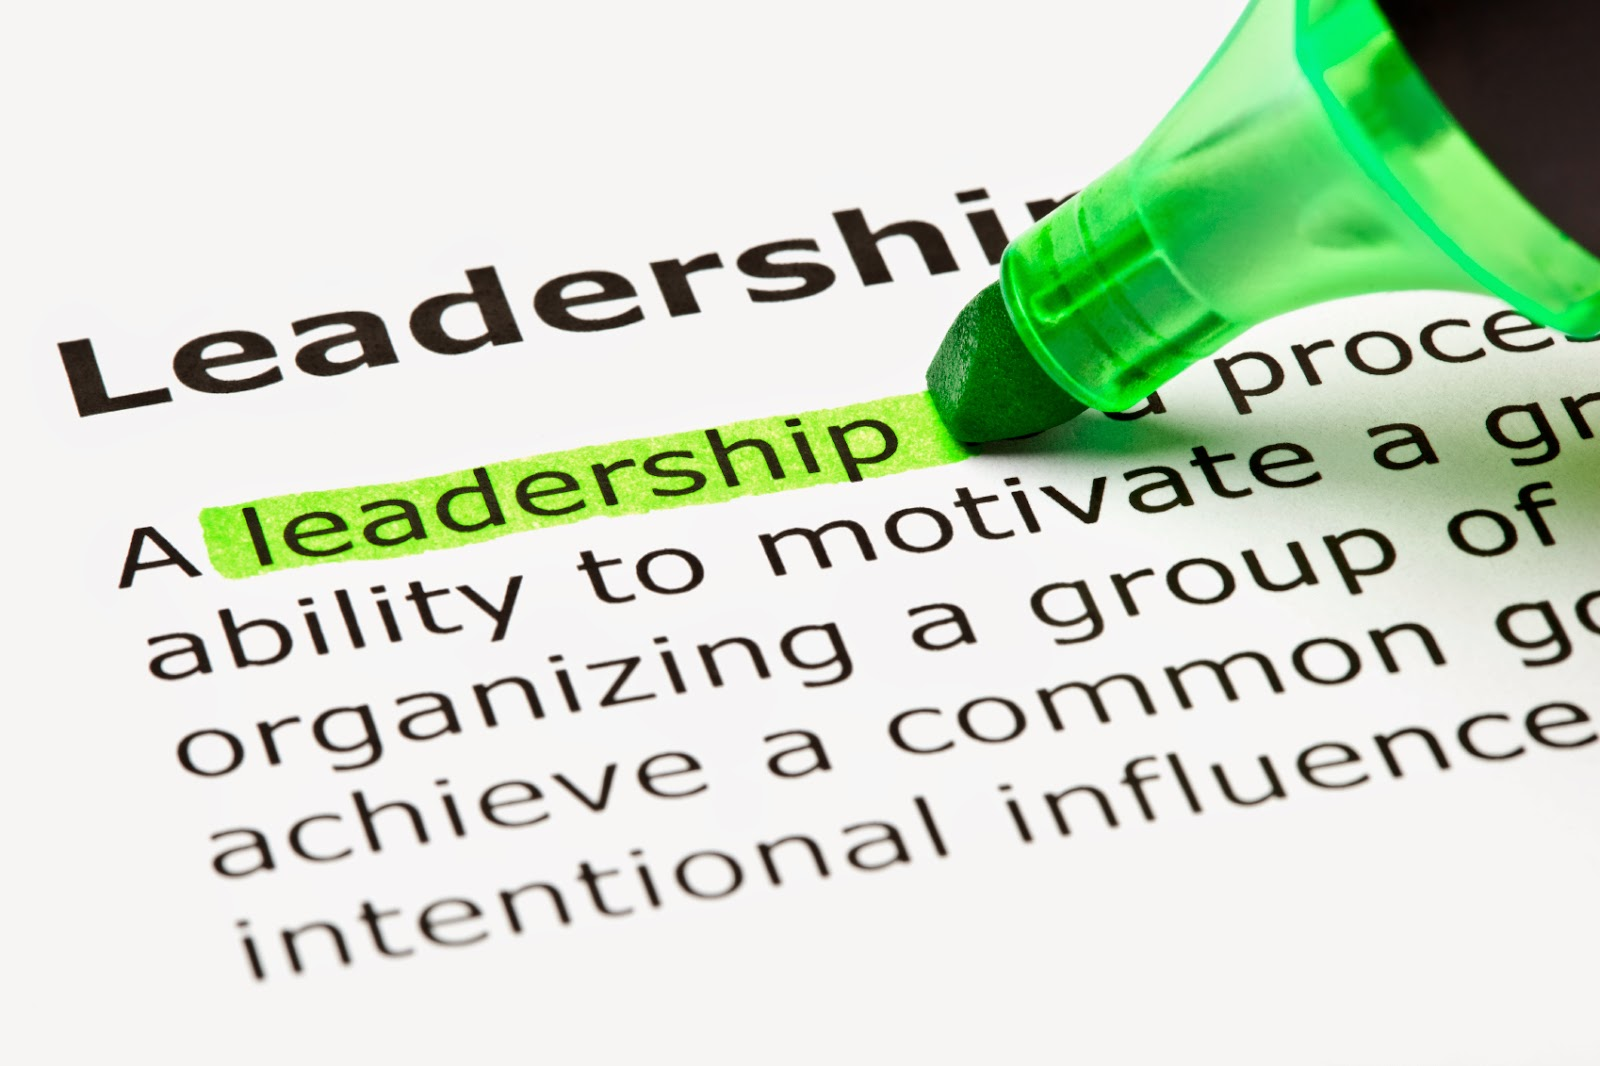 Leadership Promises - It's Not About Position, but Credibility